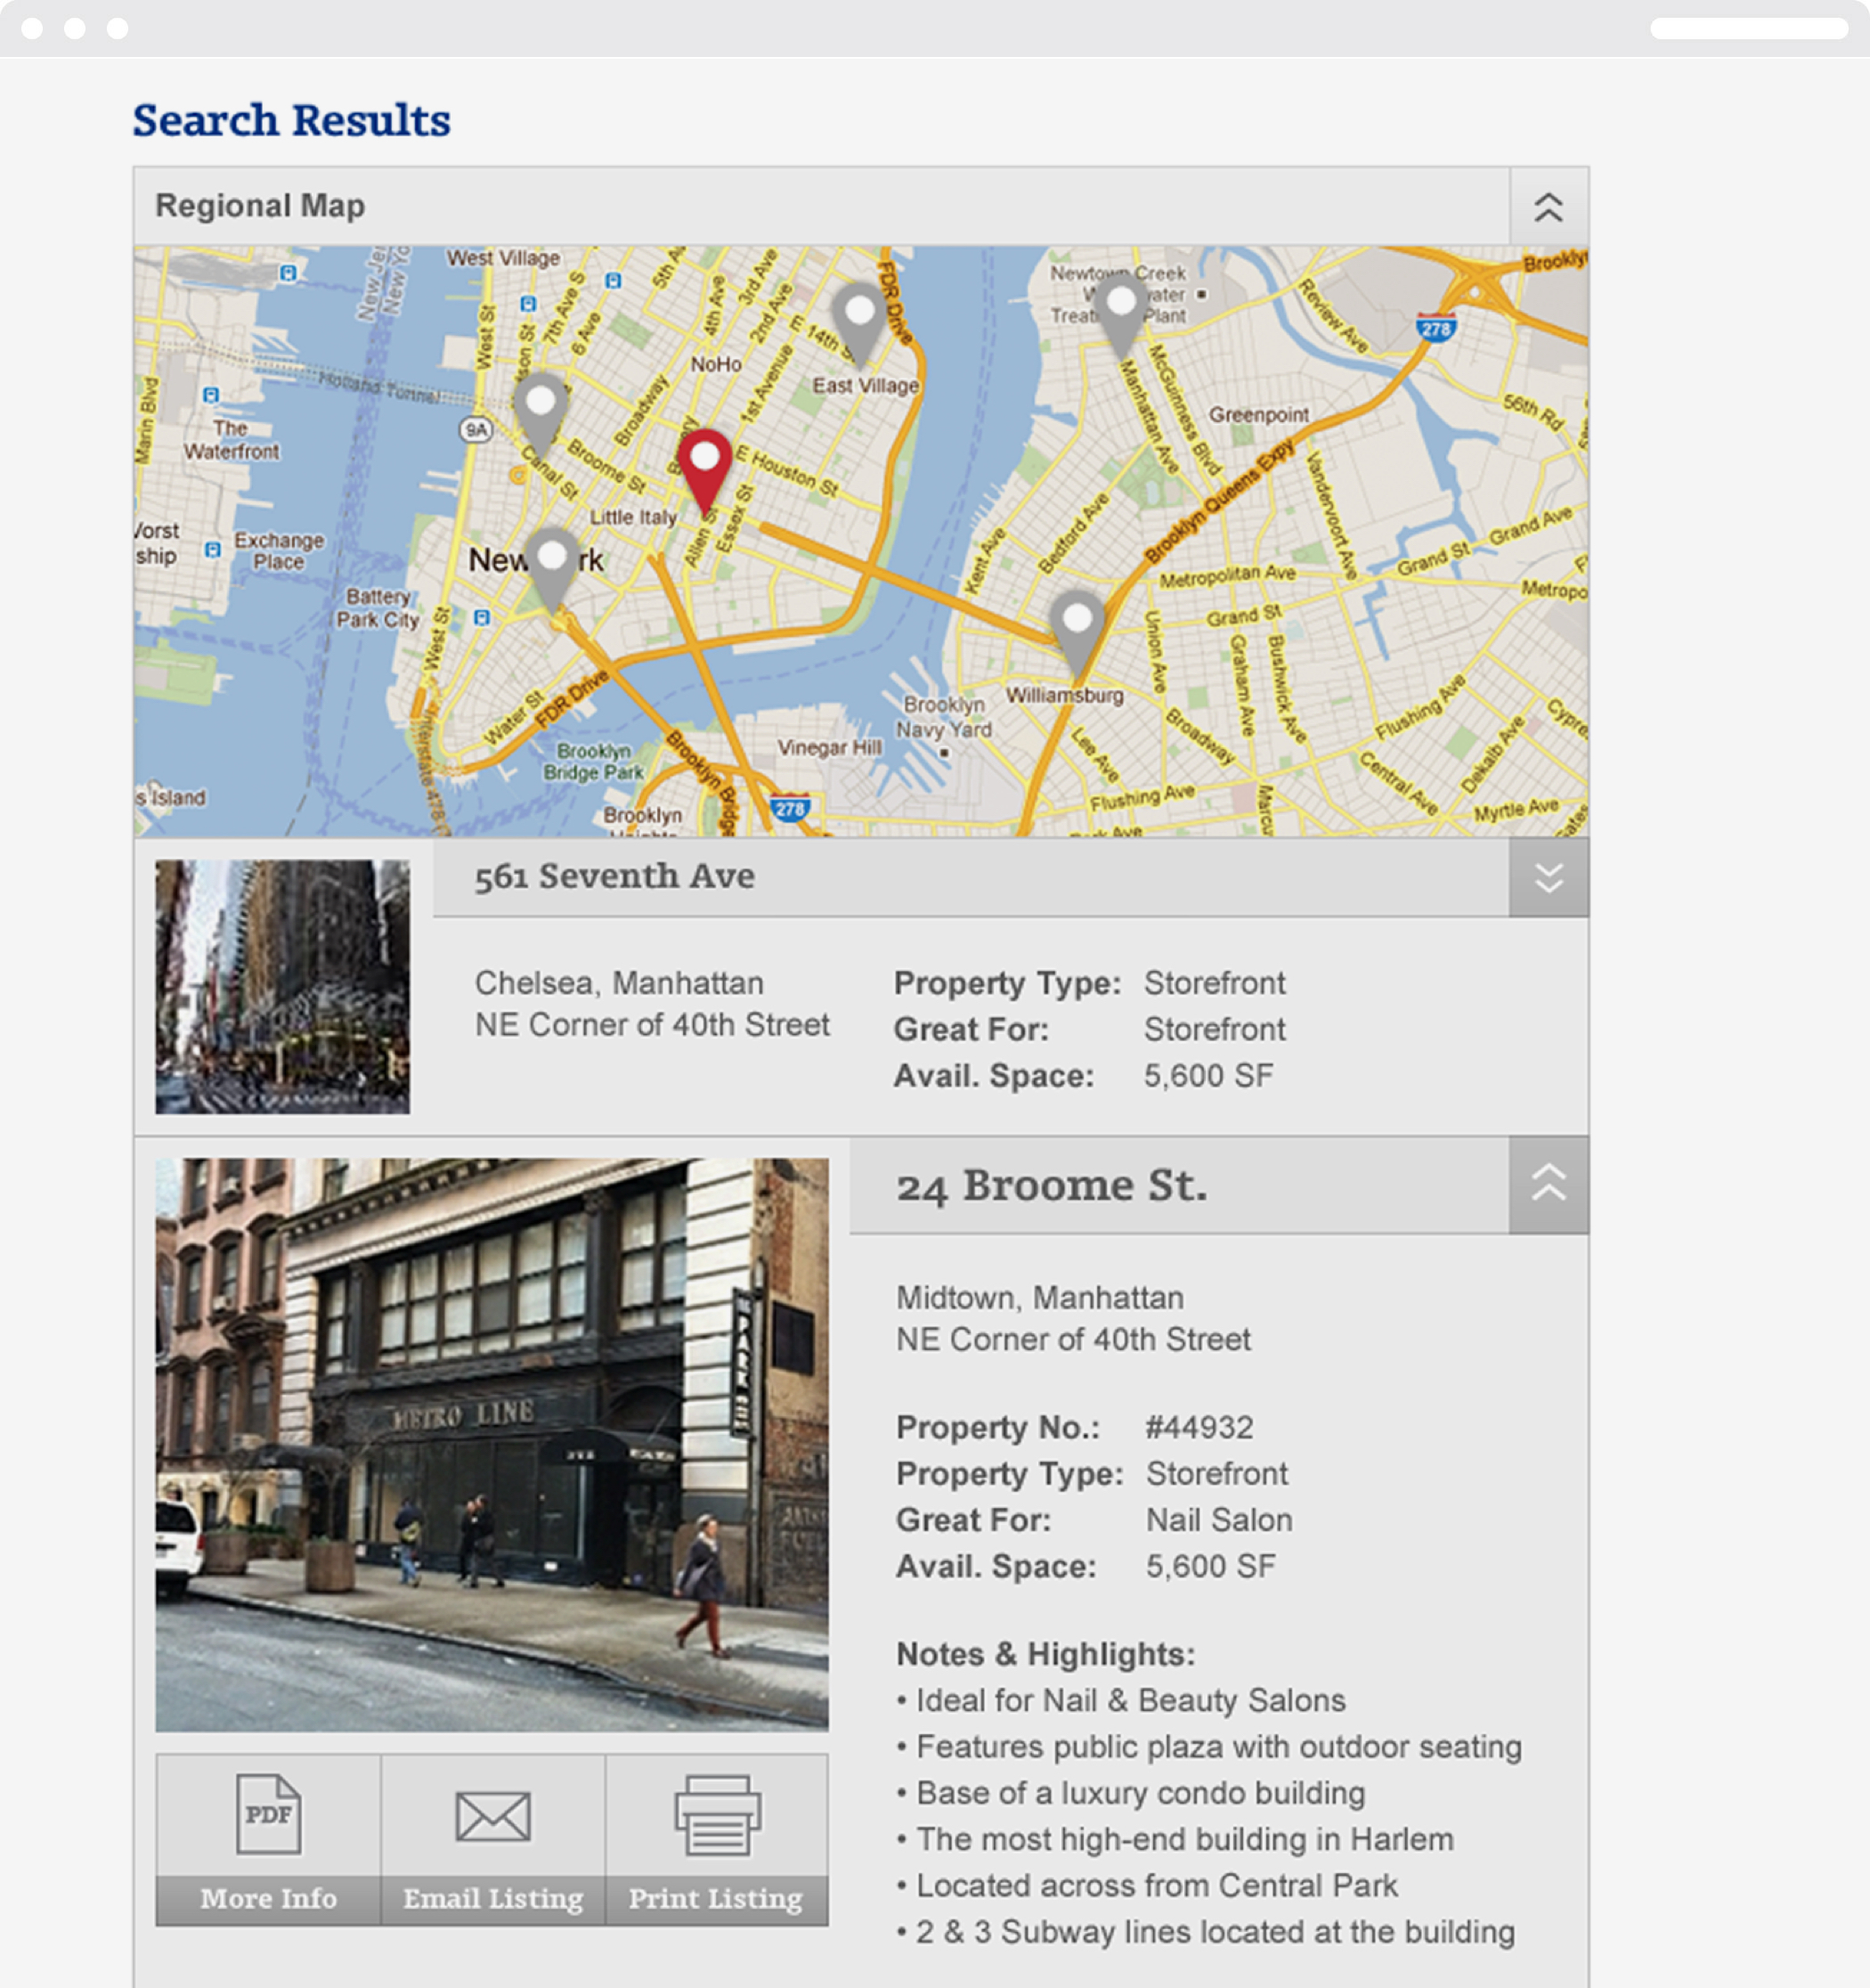 A search results page on the Ripco website with map pins and property description for 561 7th Avenue and 24 Broome Street.